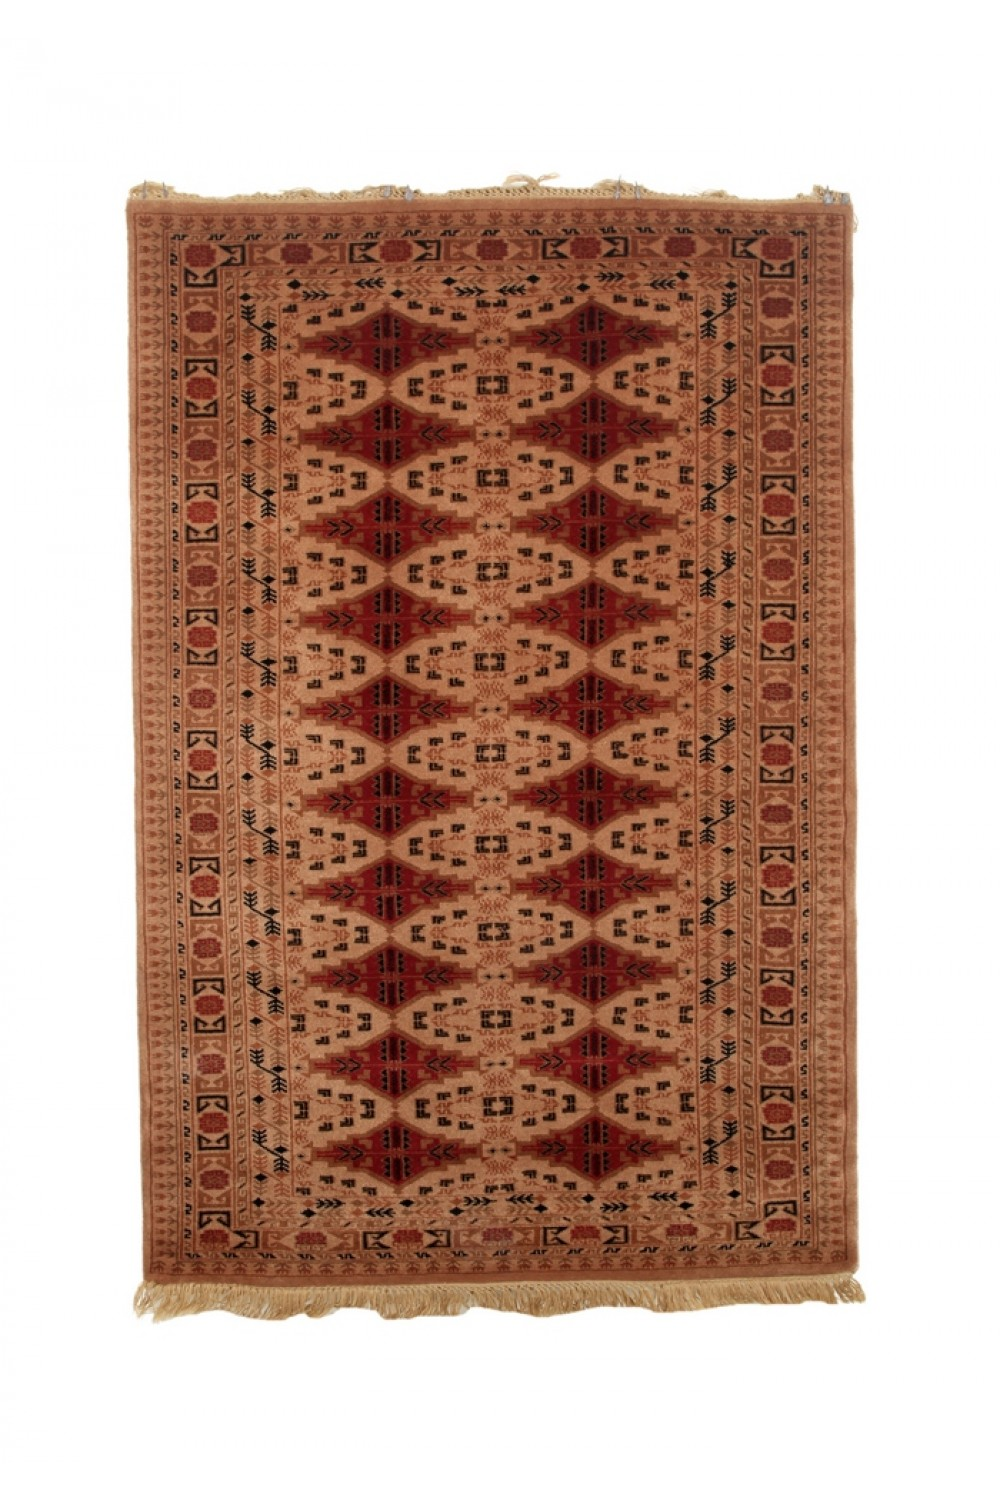 Bukhara rug, contemporary area rugs, hand knotted rug and hand knotted persian rugs